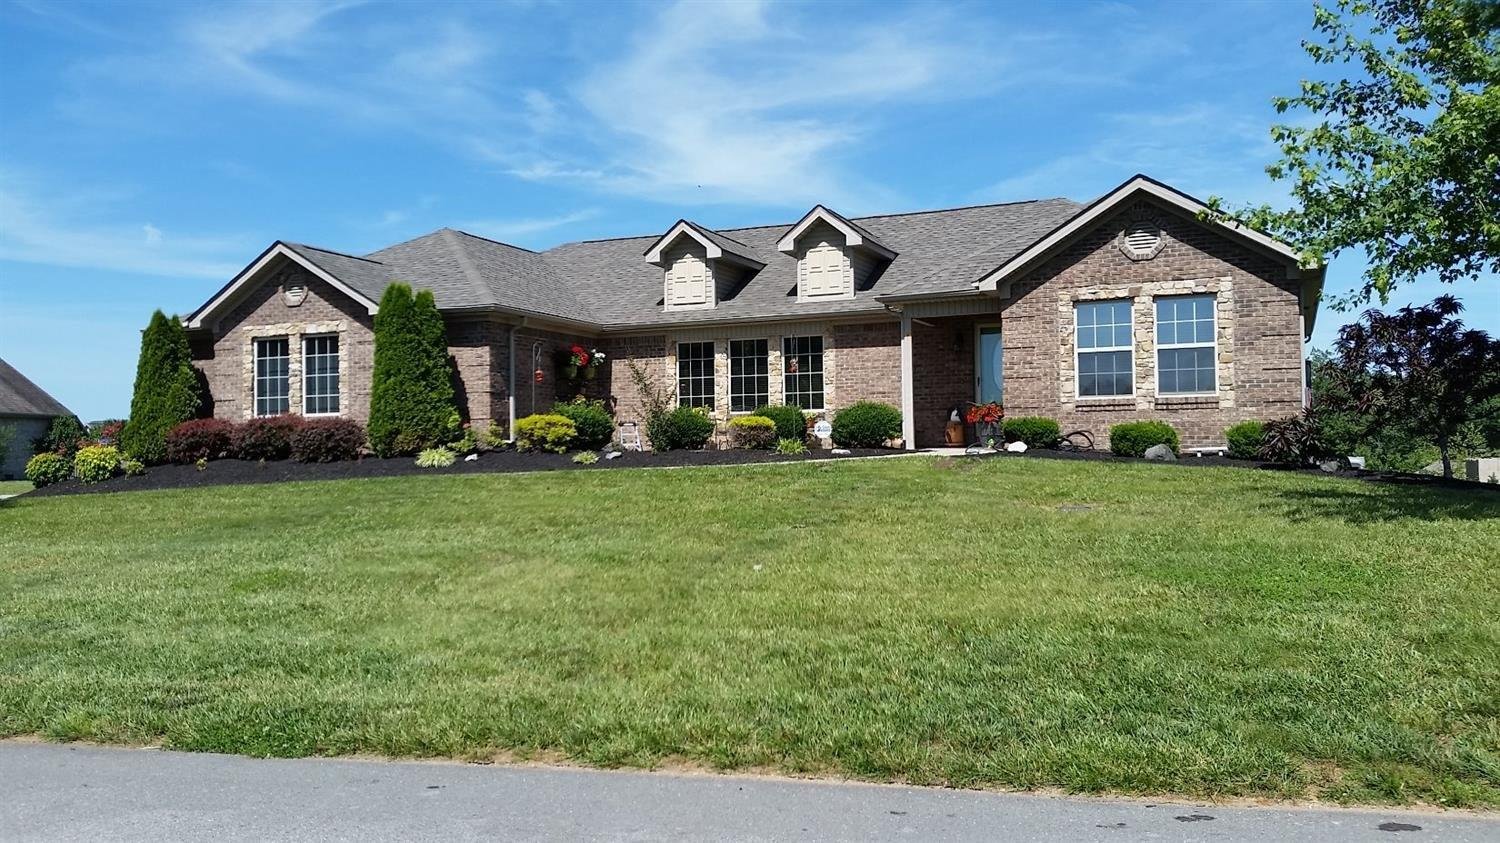 Homes For Sale in 223 Prather Rd, Somerset, KY 42503 Subdivision